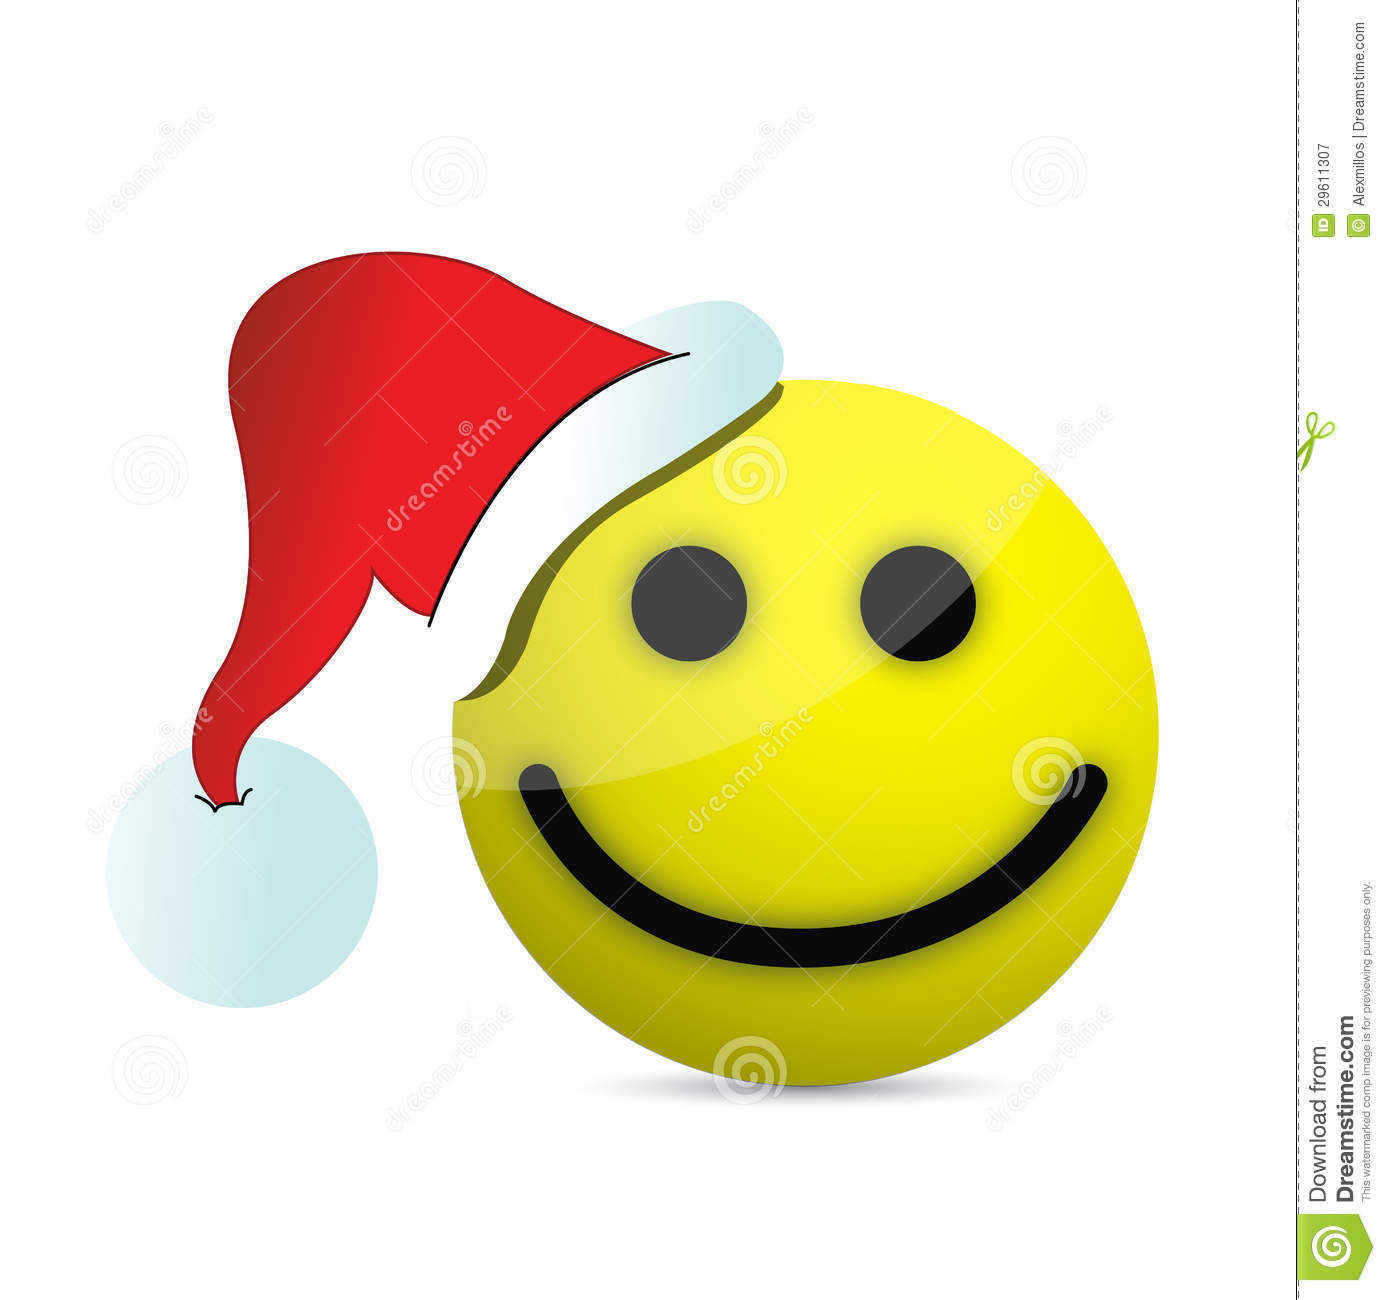 Smile ,smiley Face And Gifts Royalty Free Stock Photography - Image ...: dreamstime.com/royalty-free-stock-photography-smile-smiley-face...